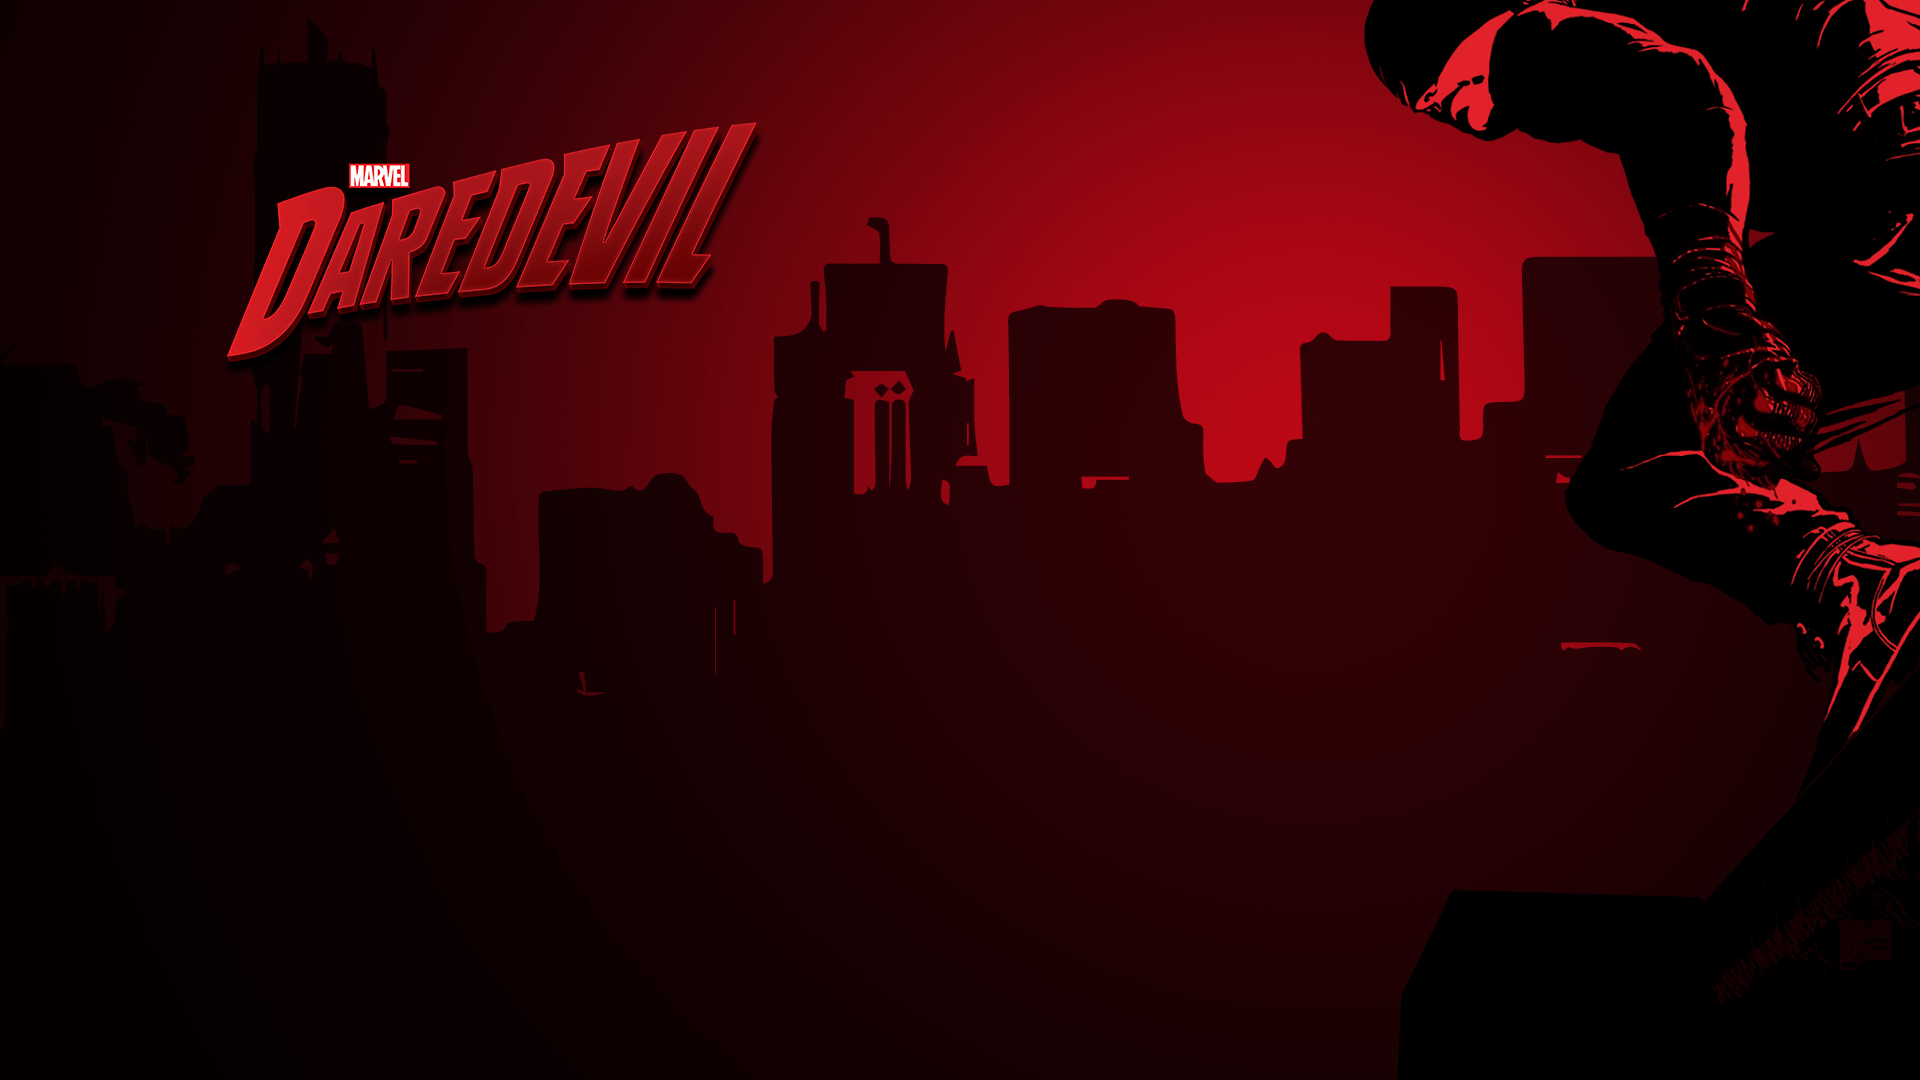 Daredevil Season 2 Premiere Date Confirmed